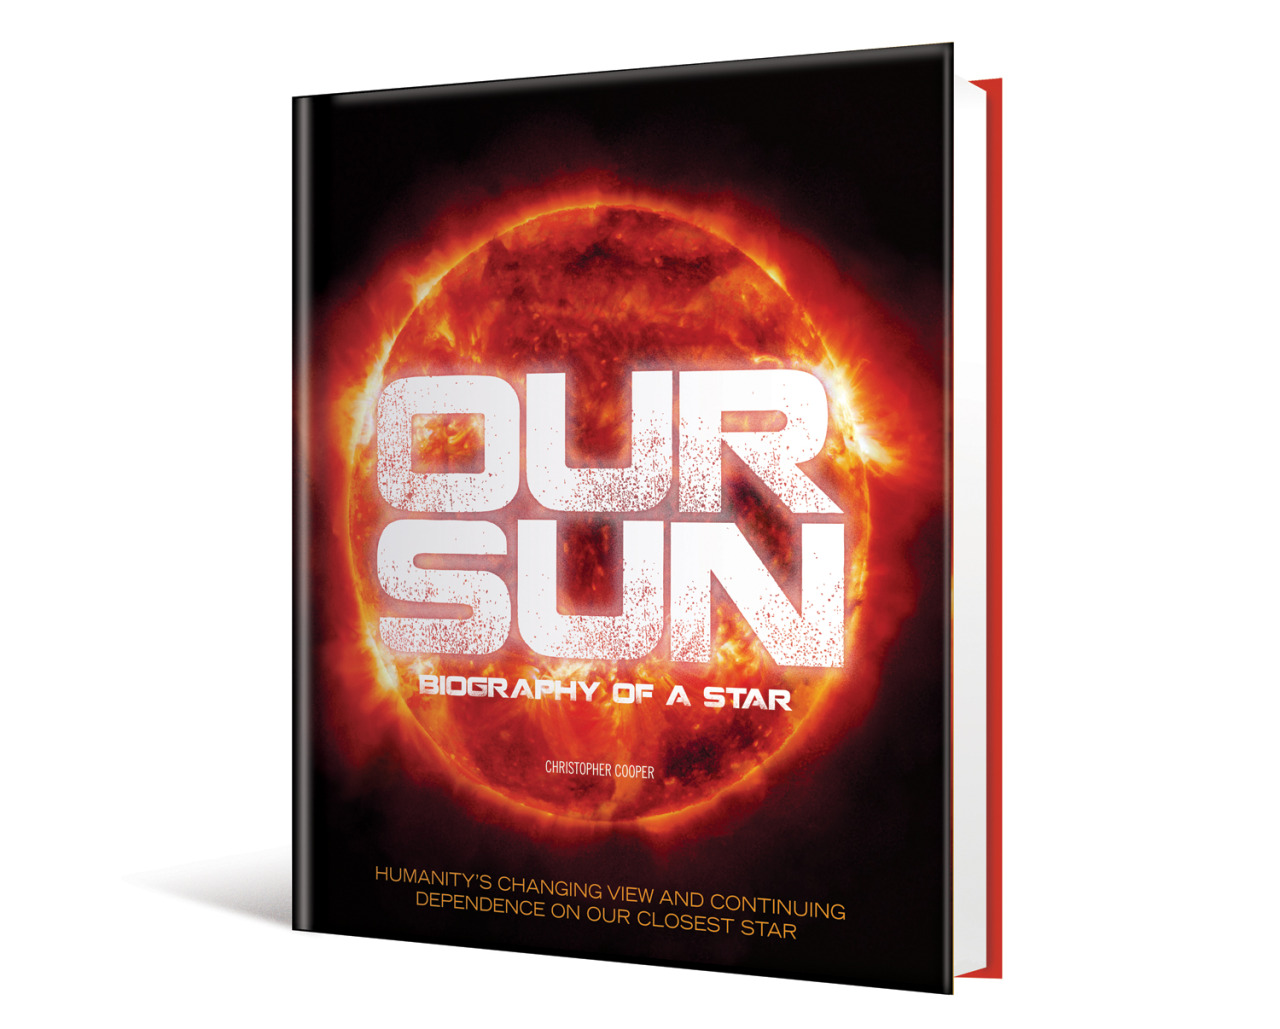 HOT!!!!    This is yet another forthcoming title from The Book Shop, Ltd. for Race Point Publishing.  Our Sun: Biography of a Star  is going to be a dazzling collection of infographics, NASA photography and facts about the sun that's blow your mind! THIS is a biggie. I, personally, can't wait. It's going to be a ton of work, but will definitely be worth it!